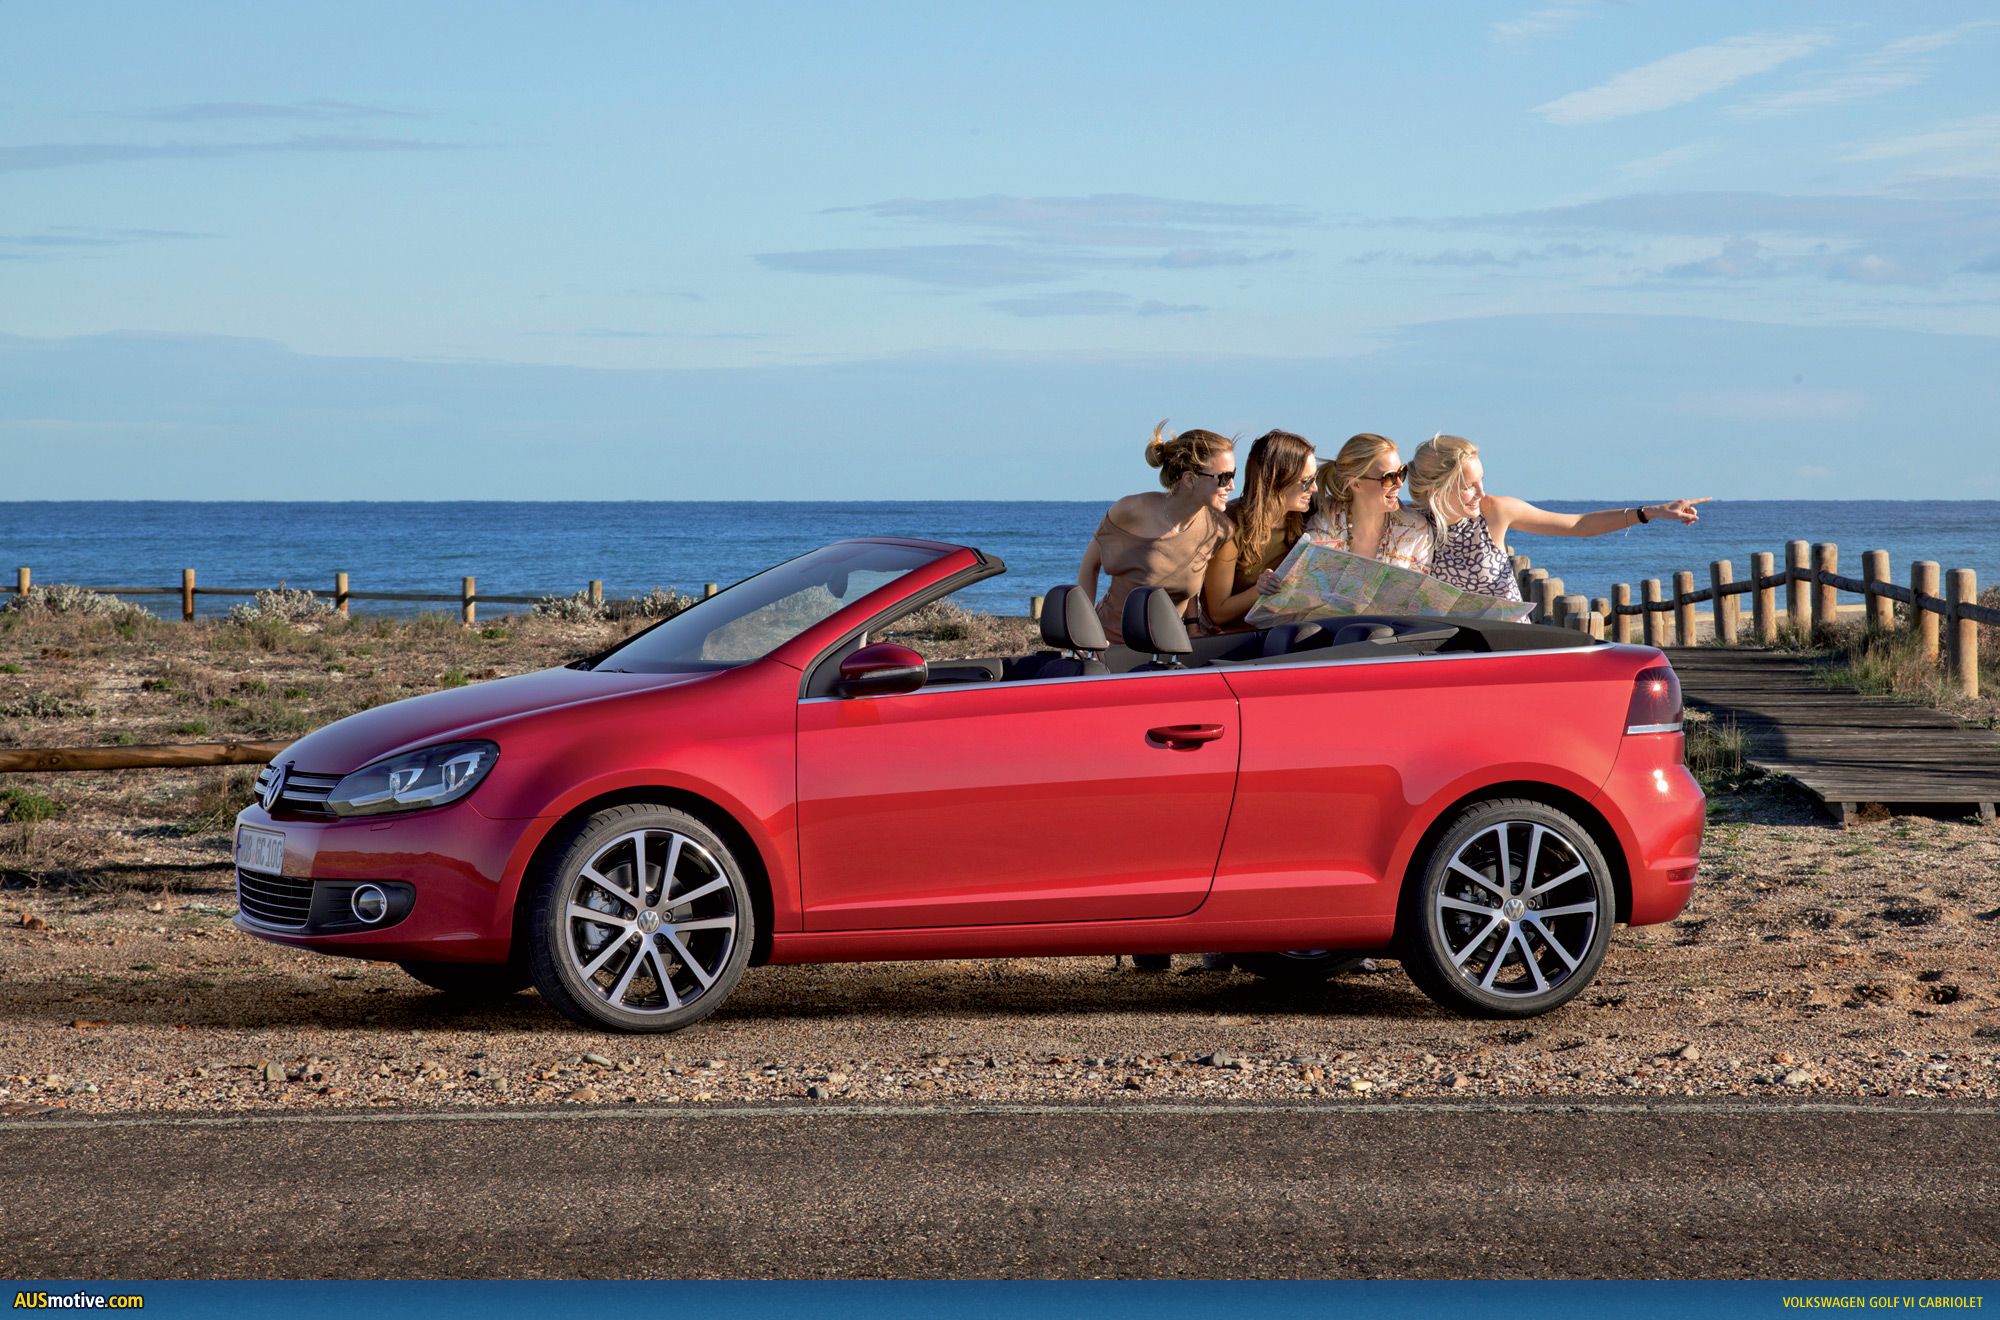 volkswagen lifts lid on new golf cabriolet. Black Bedroom Furniture Sets. Home Design Ideas